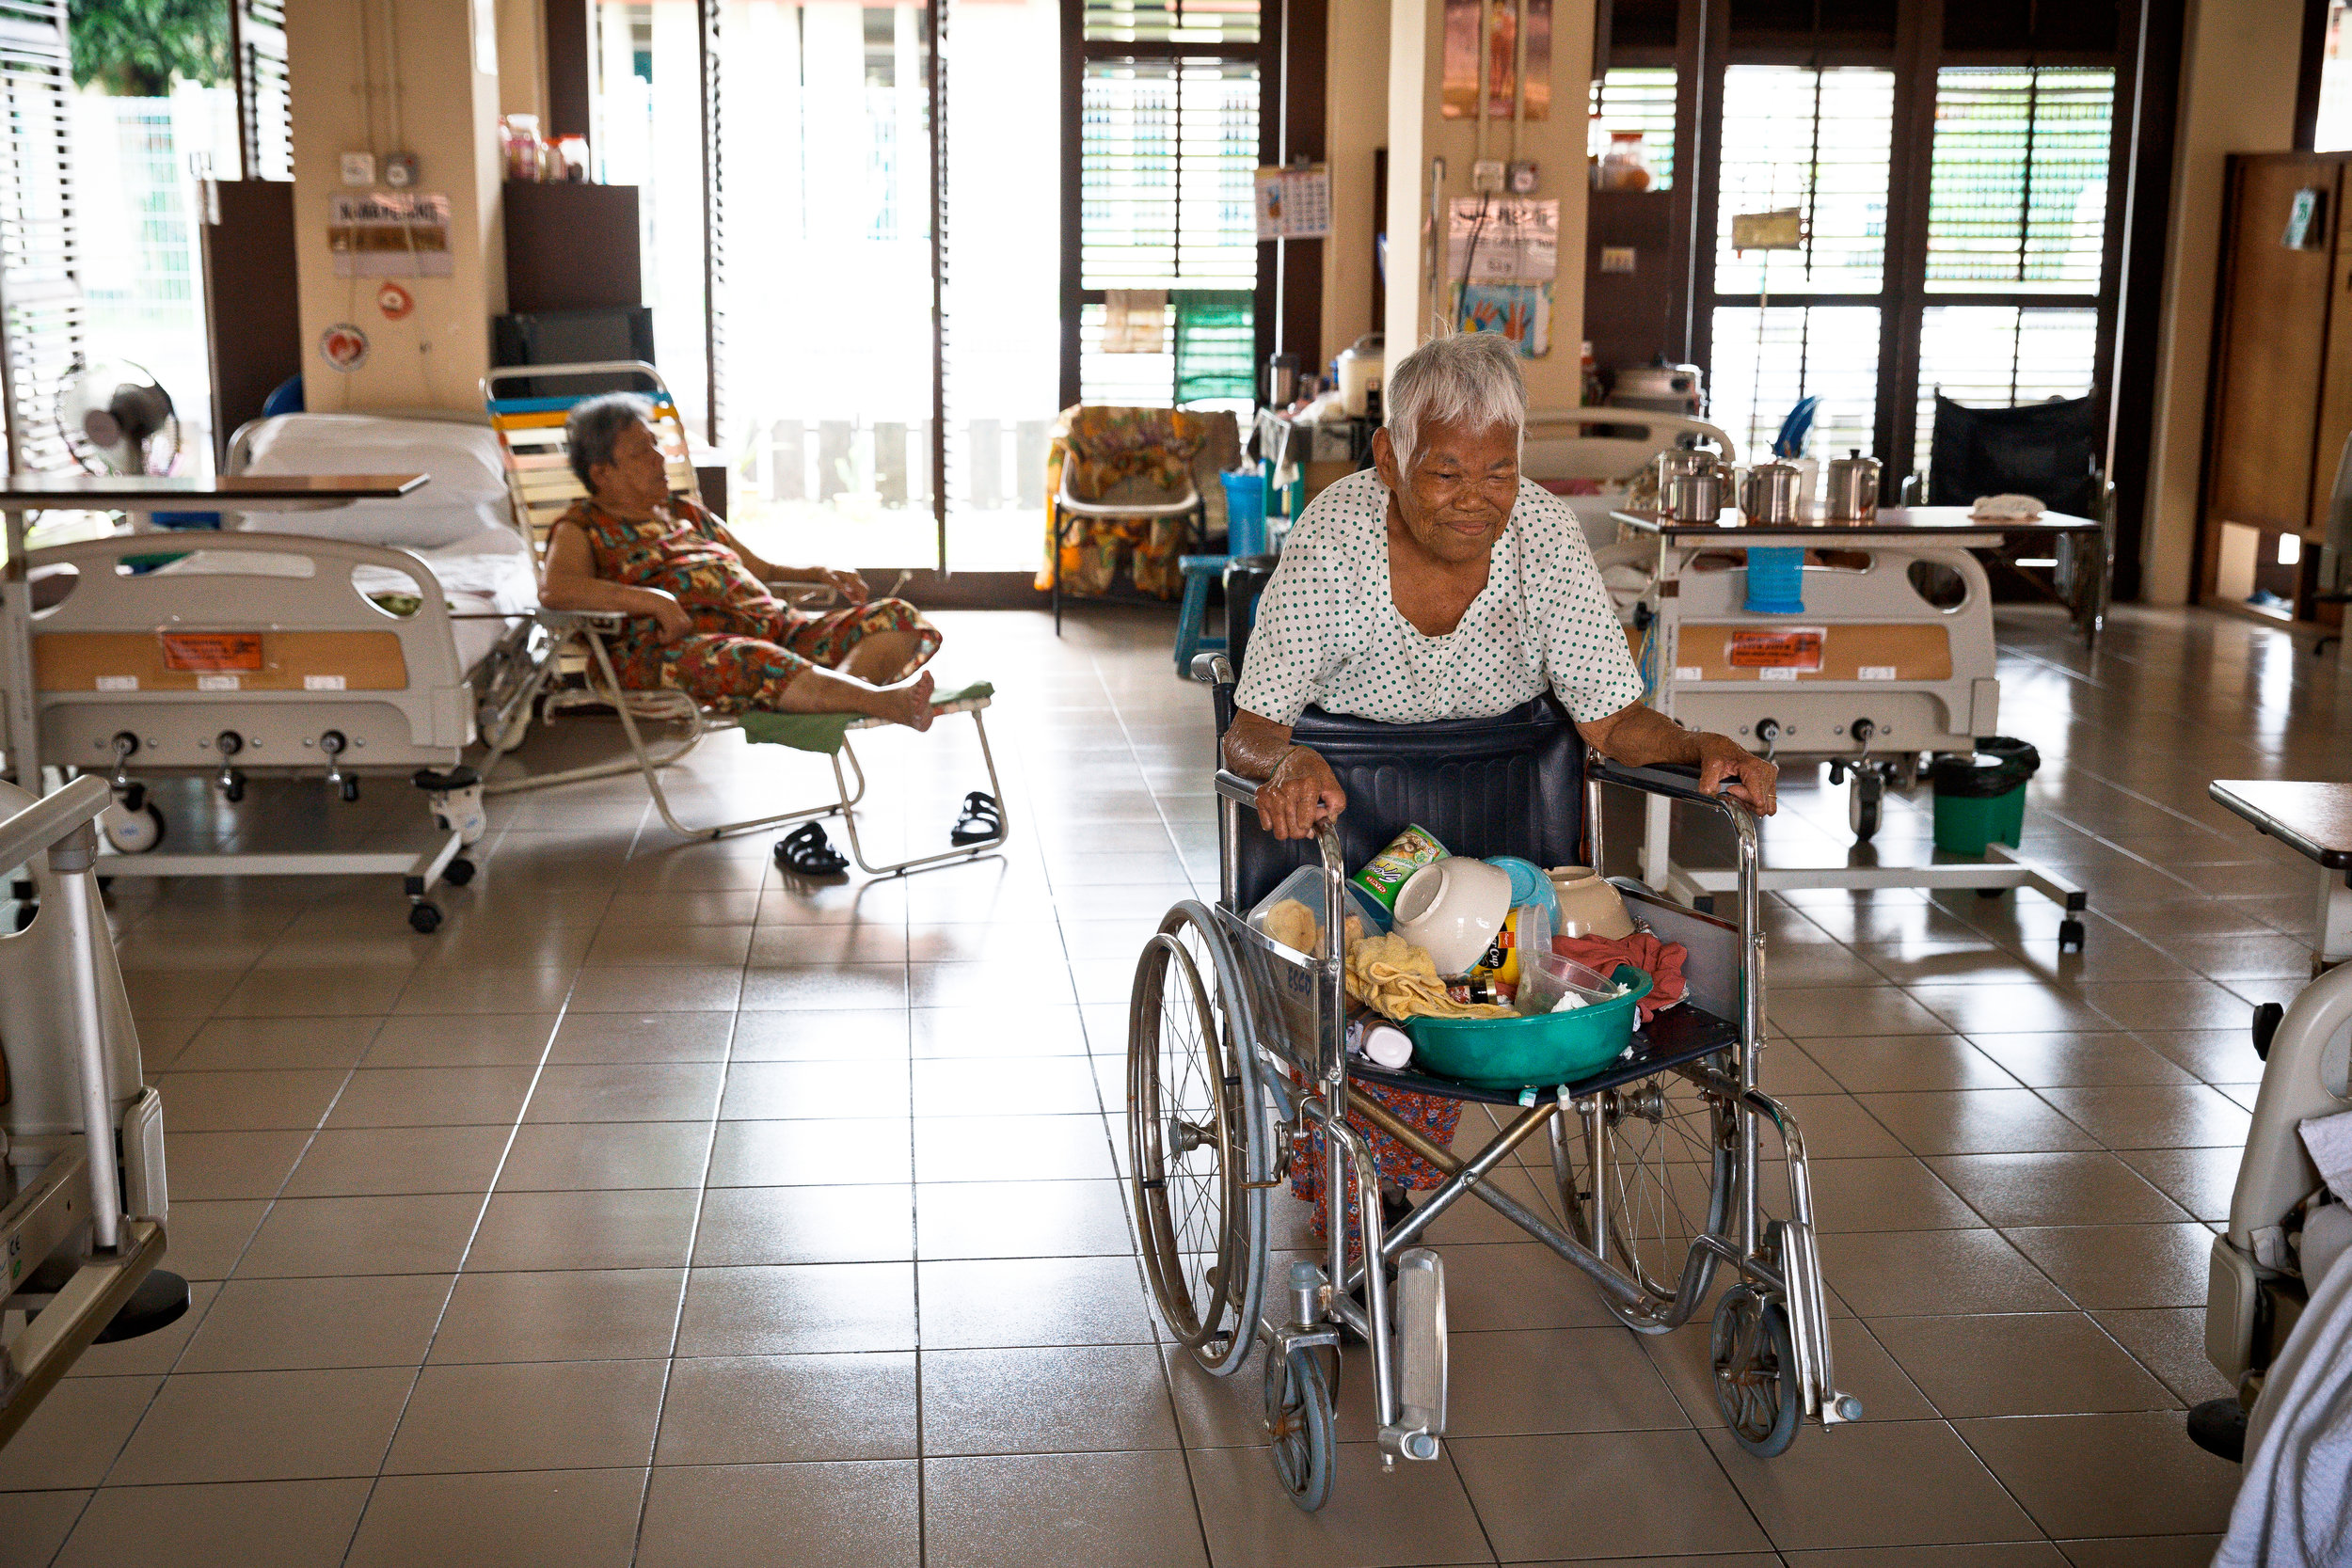 Lee would use her wheel chair to transport her utensils for washing. (photo by Mango Loke)